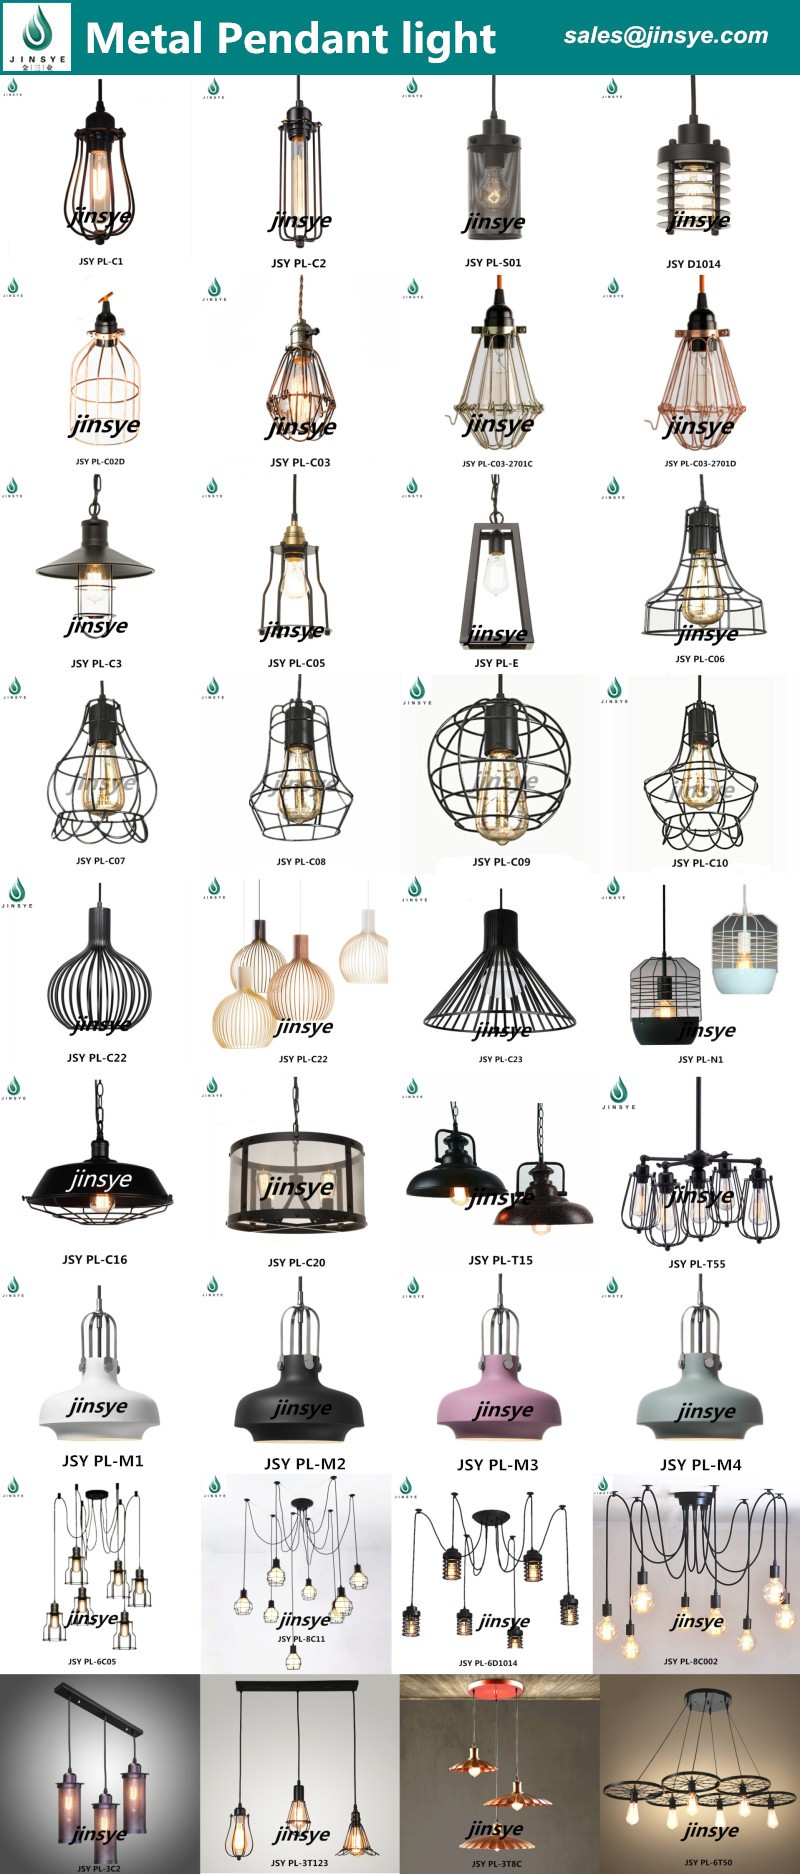 Pendant lighting lamp modern industrial chandelier with plug in pendant lighting lamp modern industrial chandelier with plug in vintage antique cord hangout lighting arubaitofo Image collections